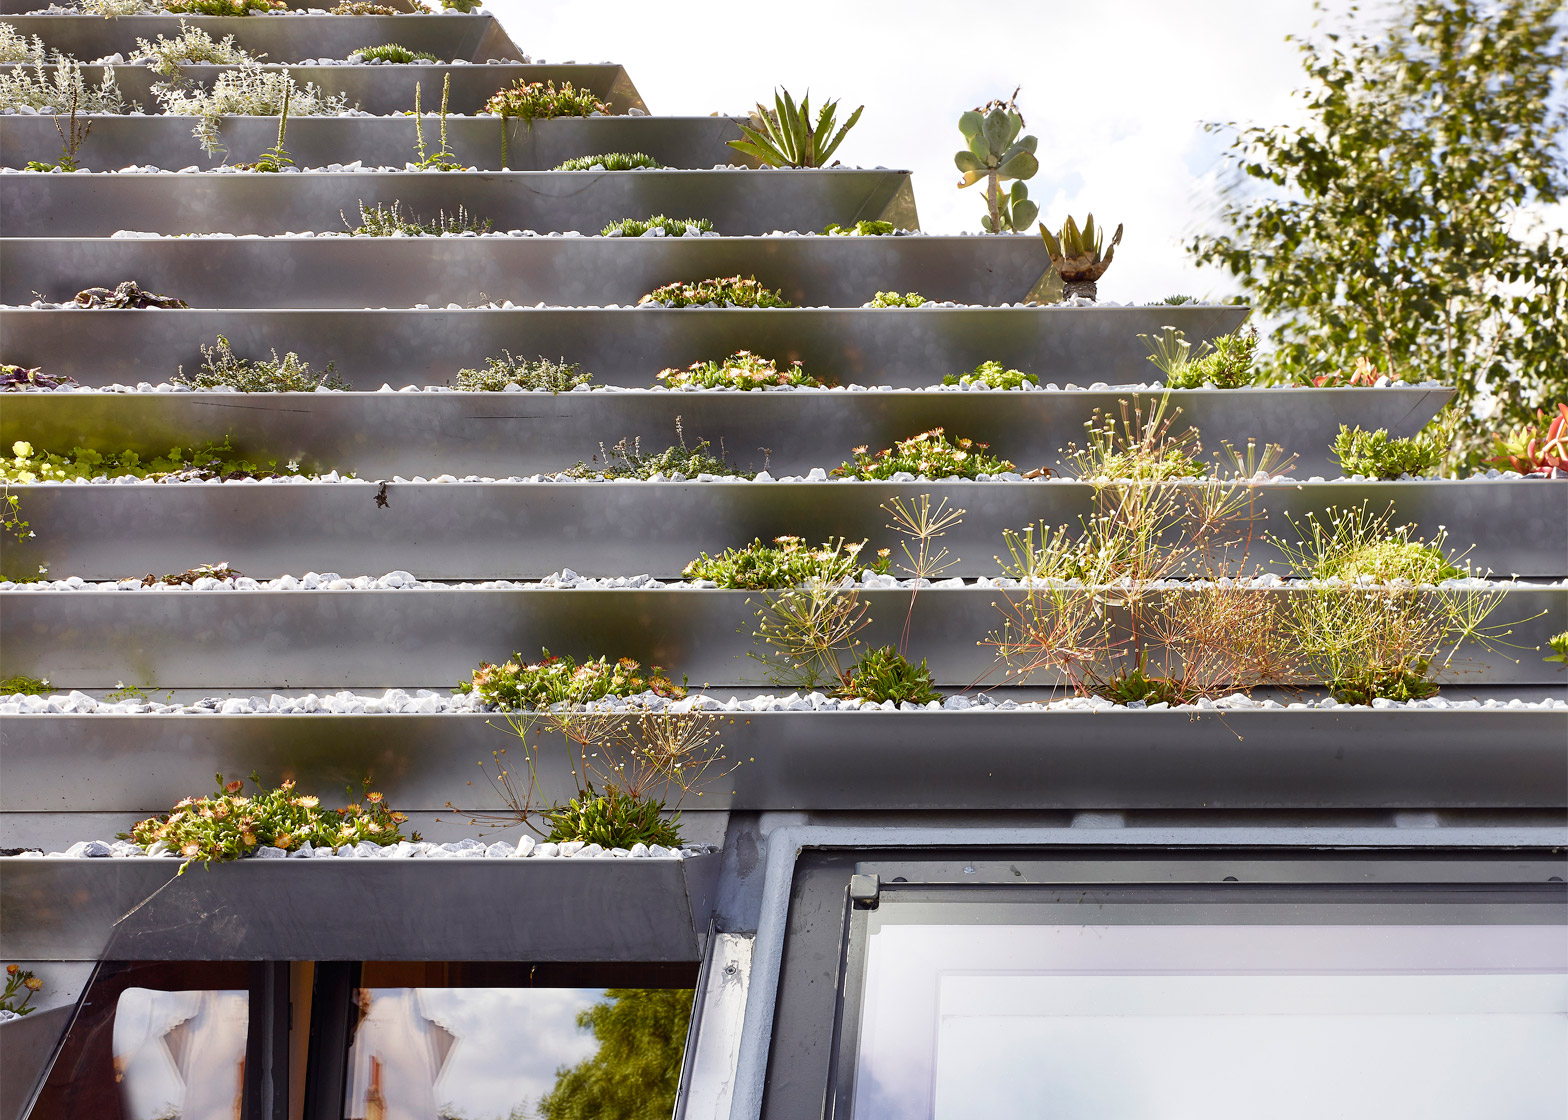 Plants for rooftop gardens - London Roof 7